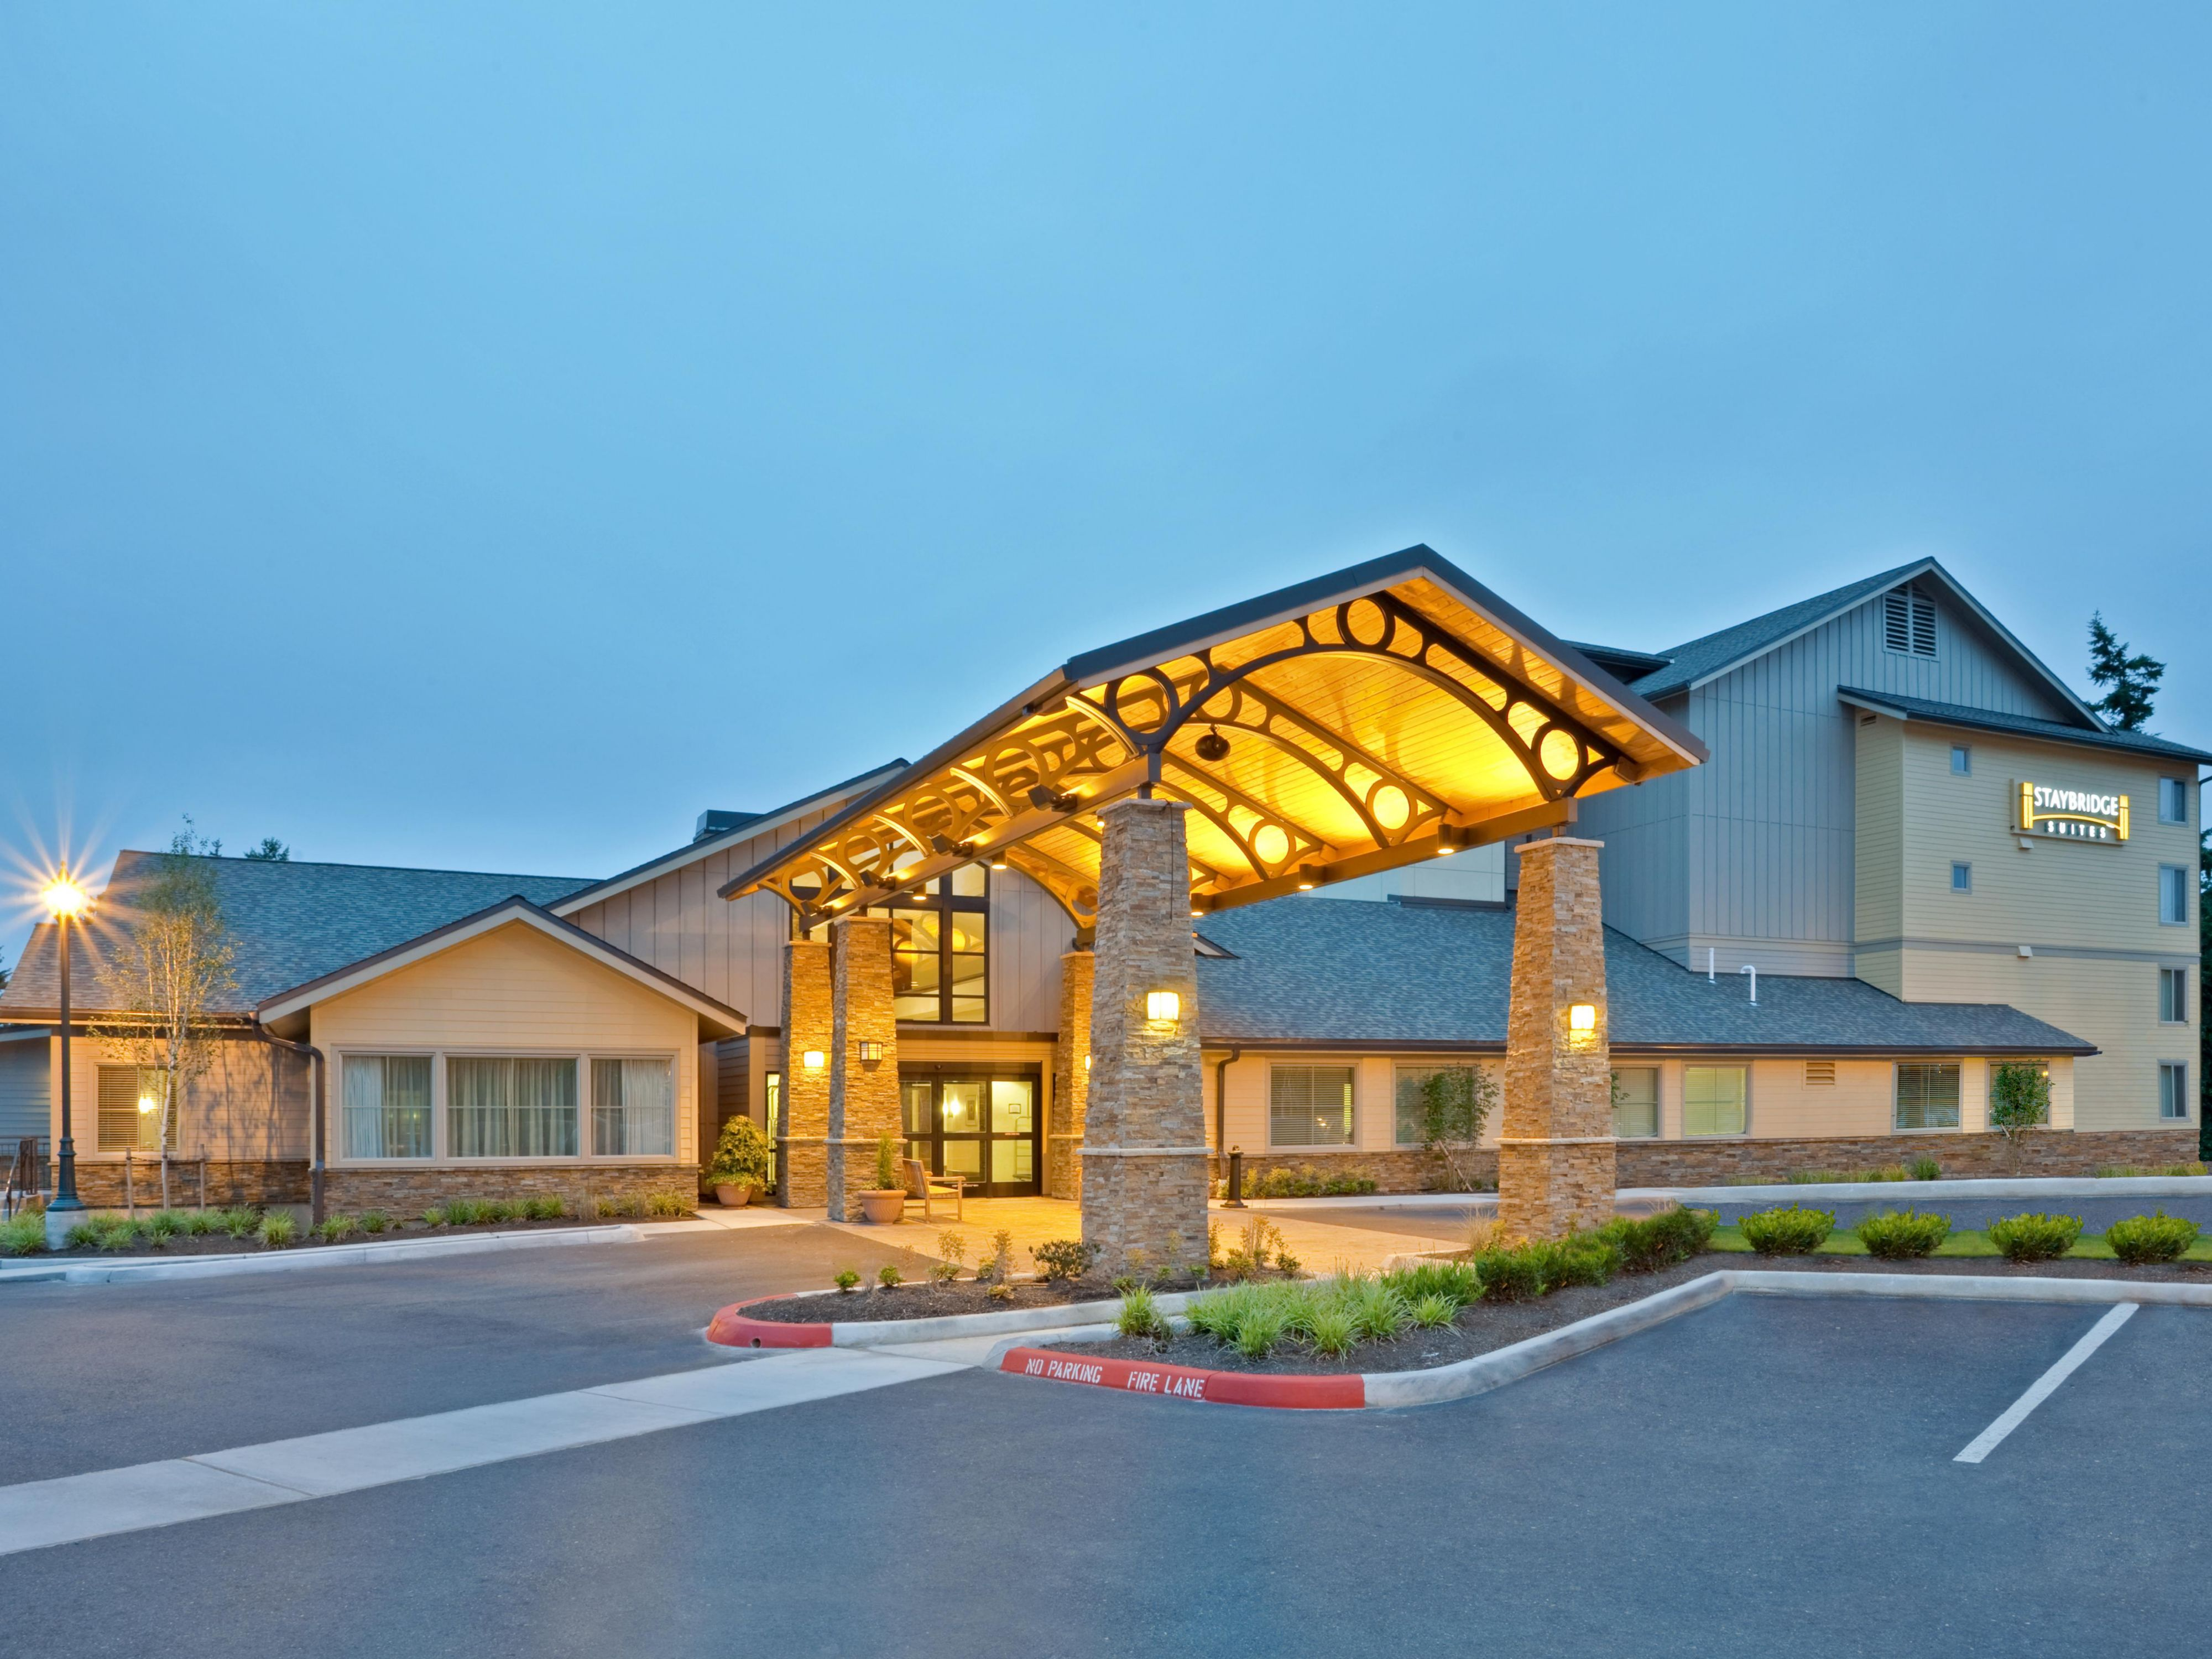 Staybridge Suites Seattle Extended Stay Hotels by IHG